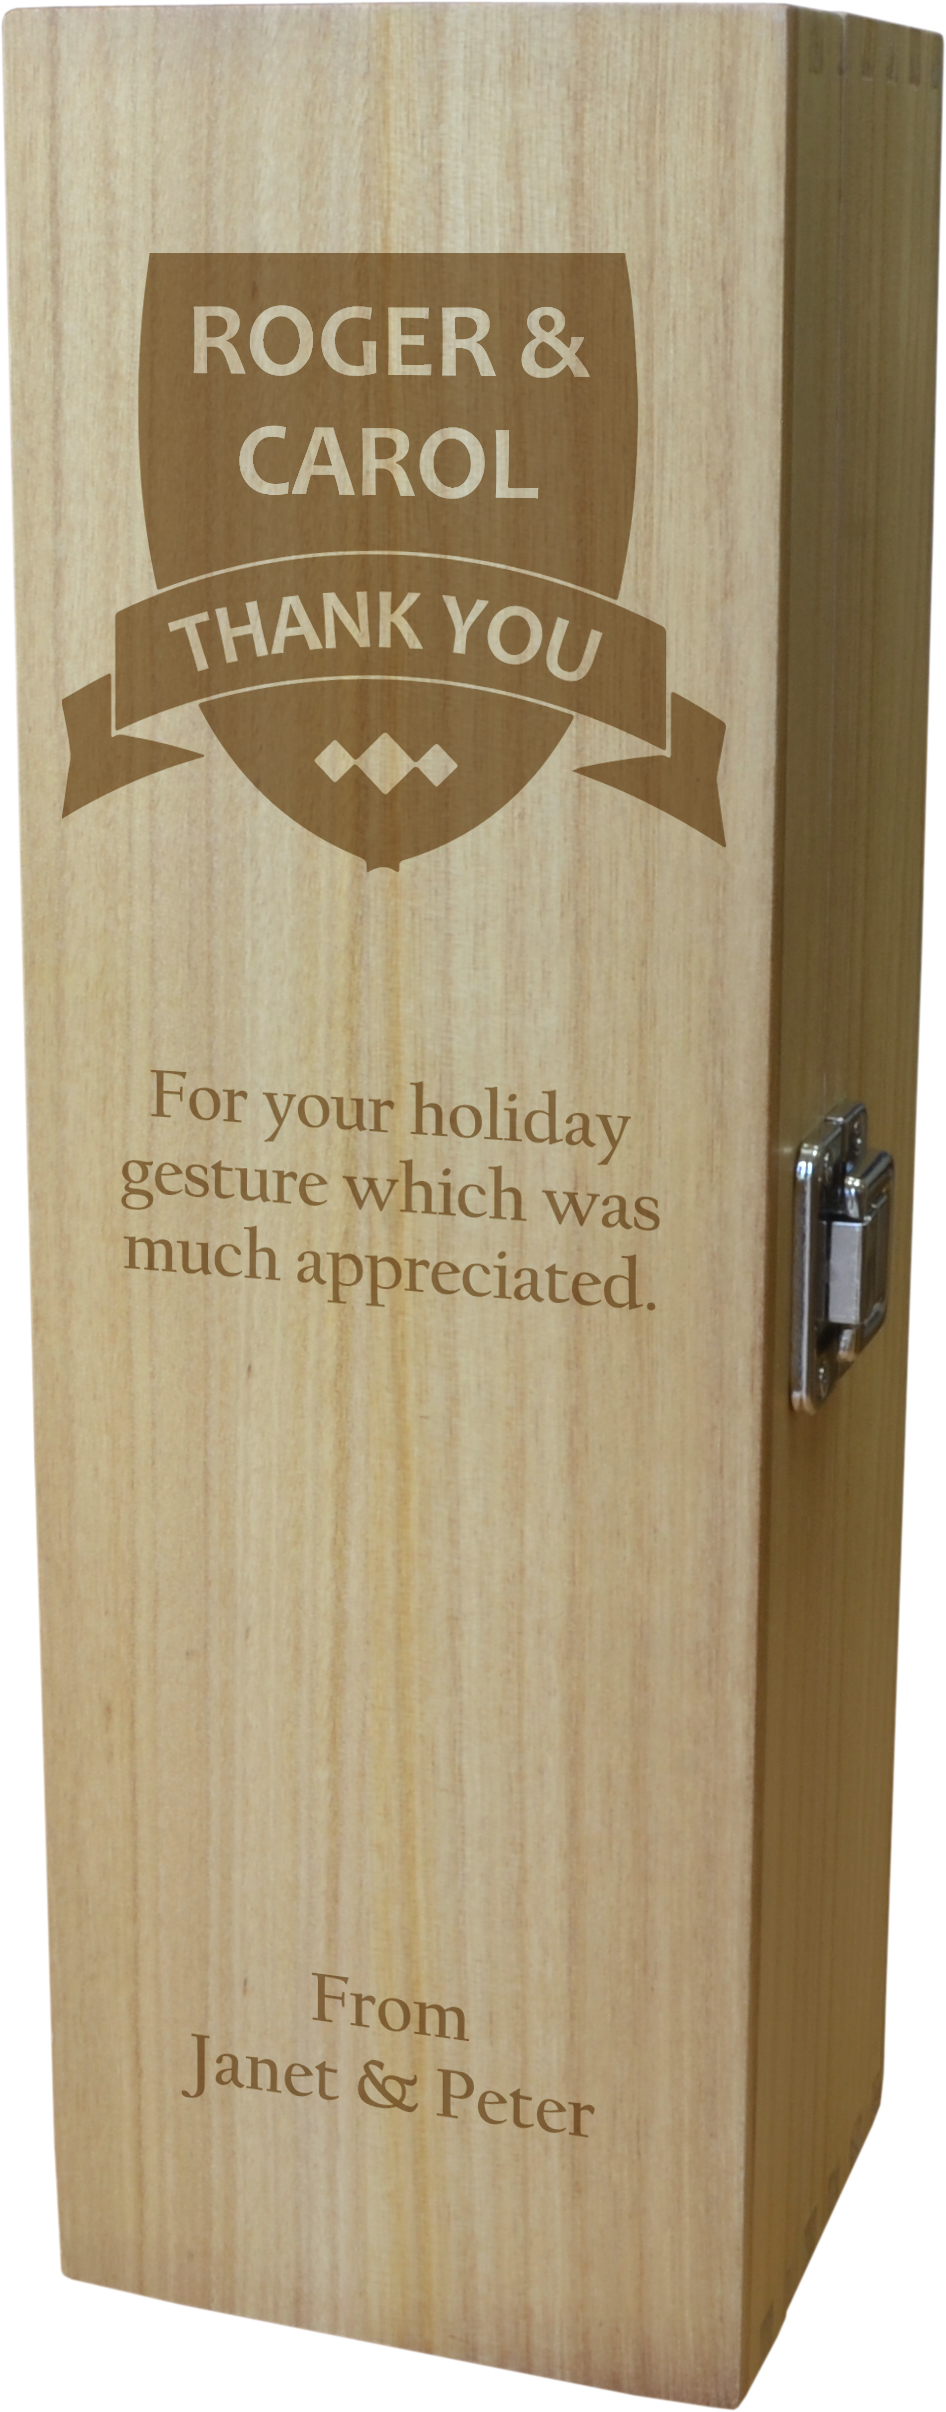 "Thank You Personalised Wine Box - Shield Design 35cm (13.75"")"